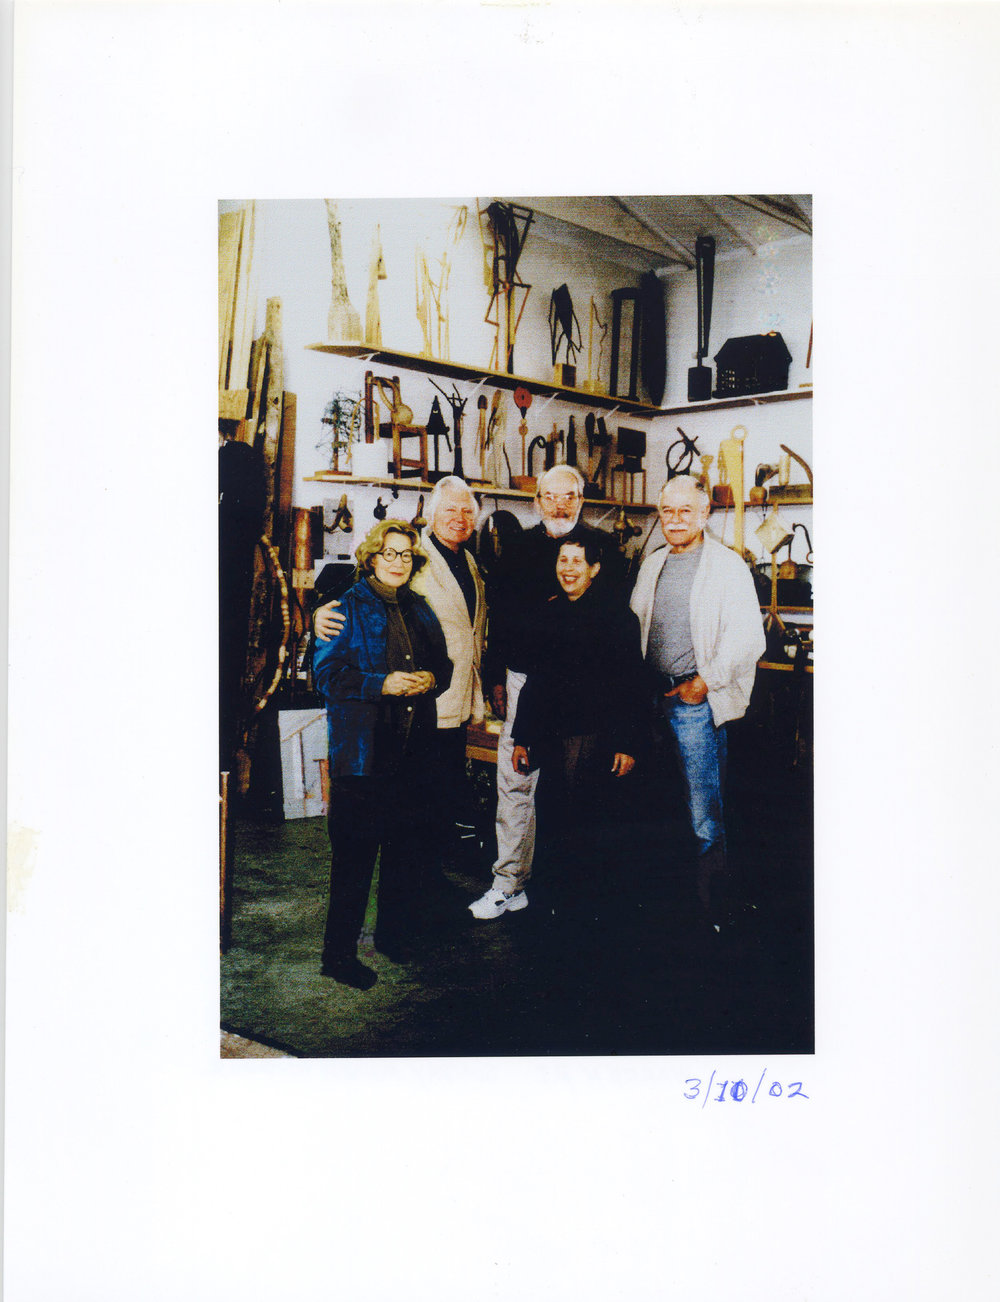 Friends and colleagues on a visit to JU's studio, 60 Croade St., Warren, RI. Left to right - Mary Townley, JU, Hugh Townley, Bunny Fain, and Jean Fain in the foreground. March 10, 2002